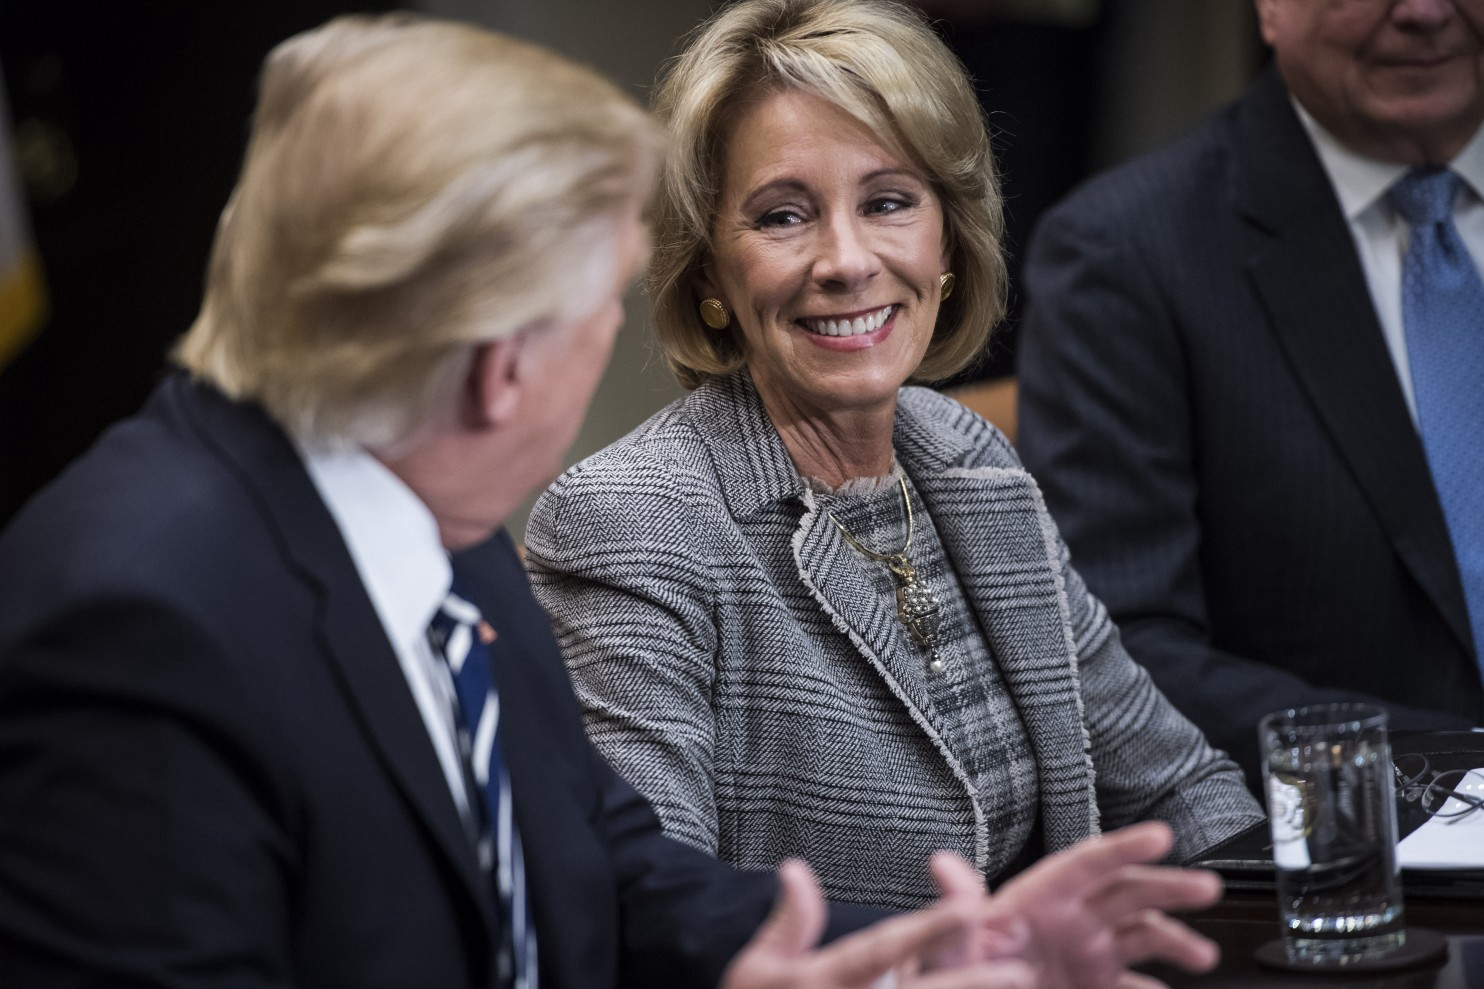 b05843bc310 President Donald Trump talks with Education Secretary Betsy DeVos by his  side during a meeting with parents and teachers in the Roosevelt Room of  the White ...